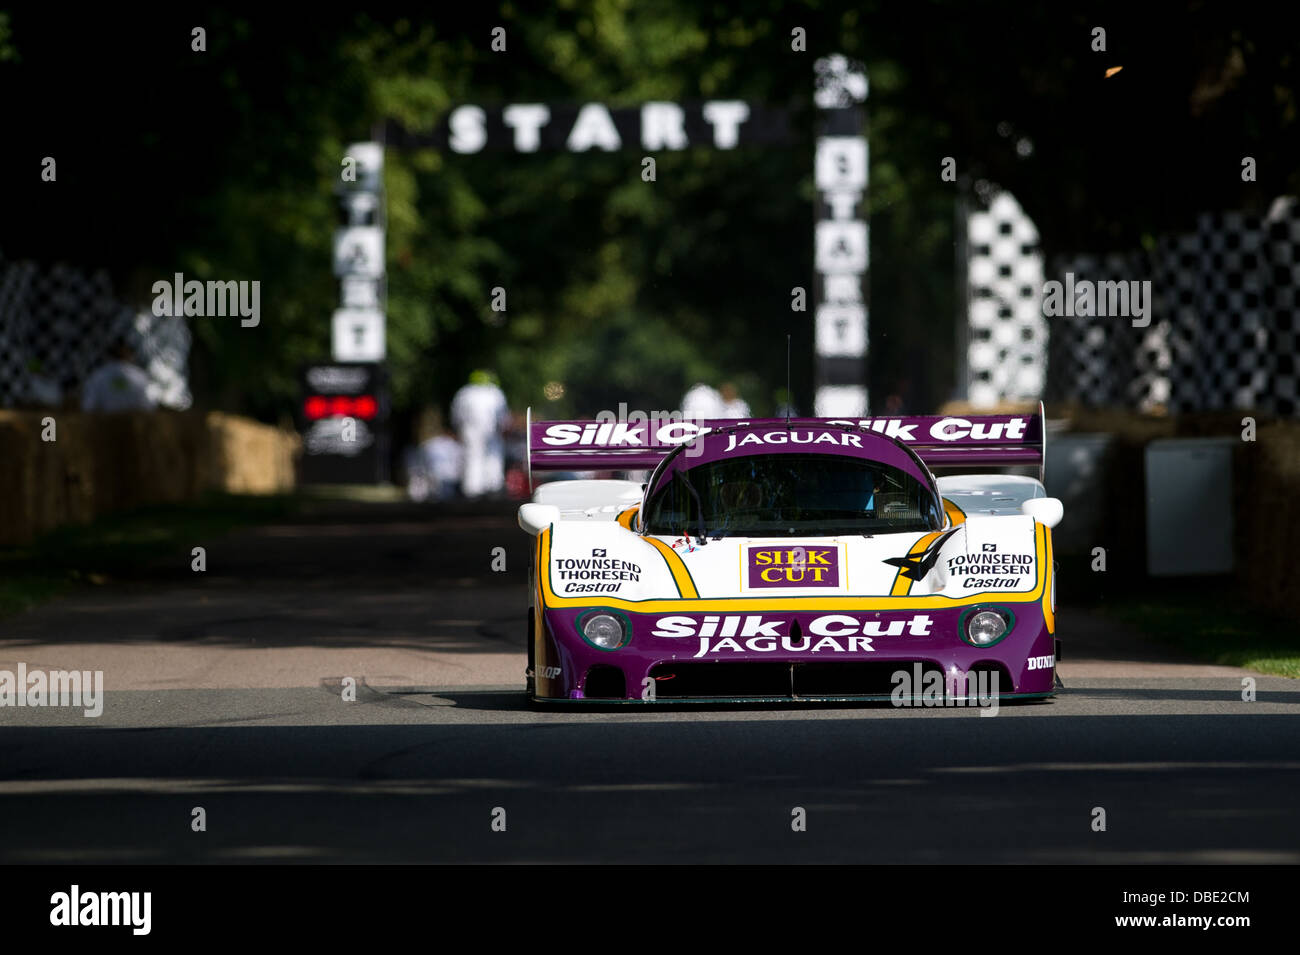 Chichester, UK - July 2013: Jaguar XJR8/9 in action at the Goodwood Festival of Speed on July 12, 2013. - Stock Image